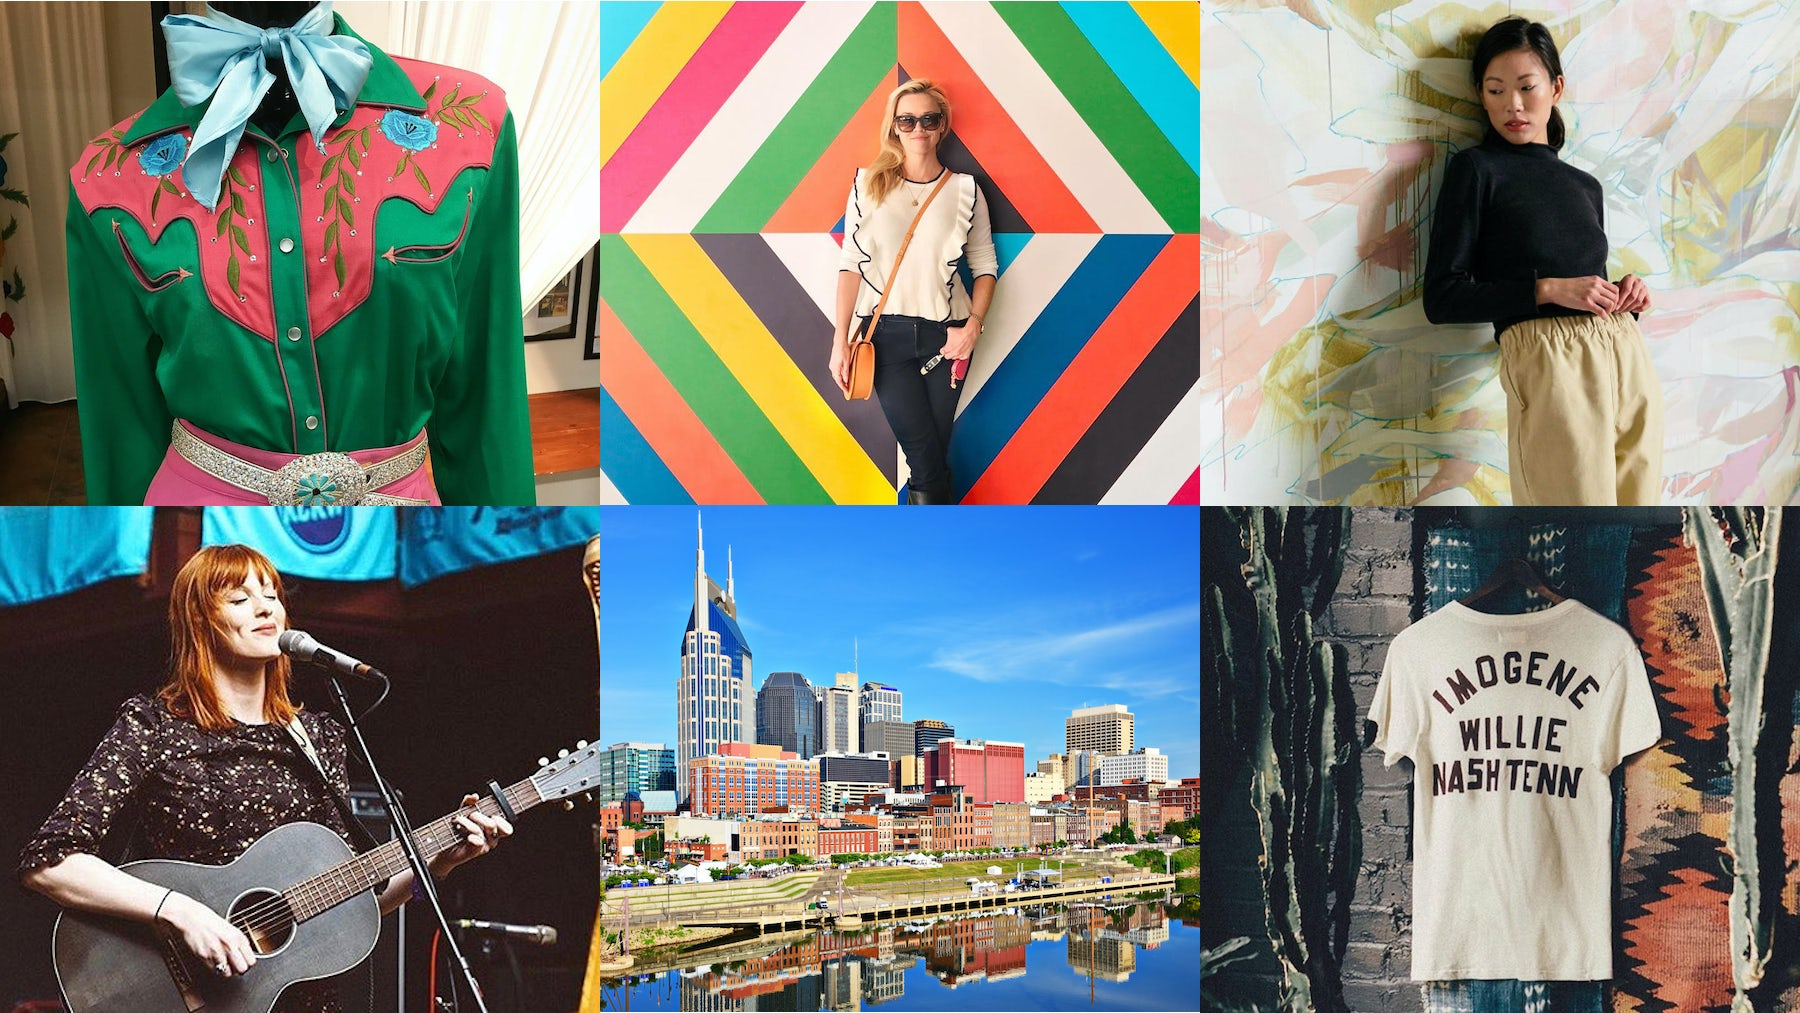 Nashville: America's Next Fashion Capital?